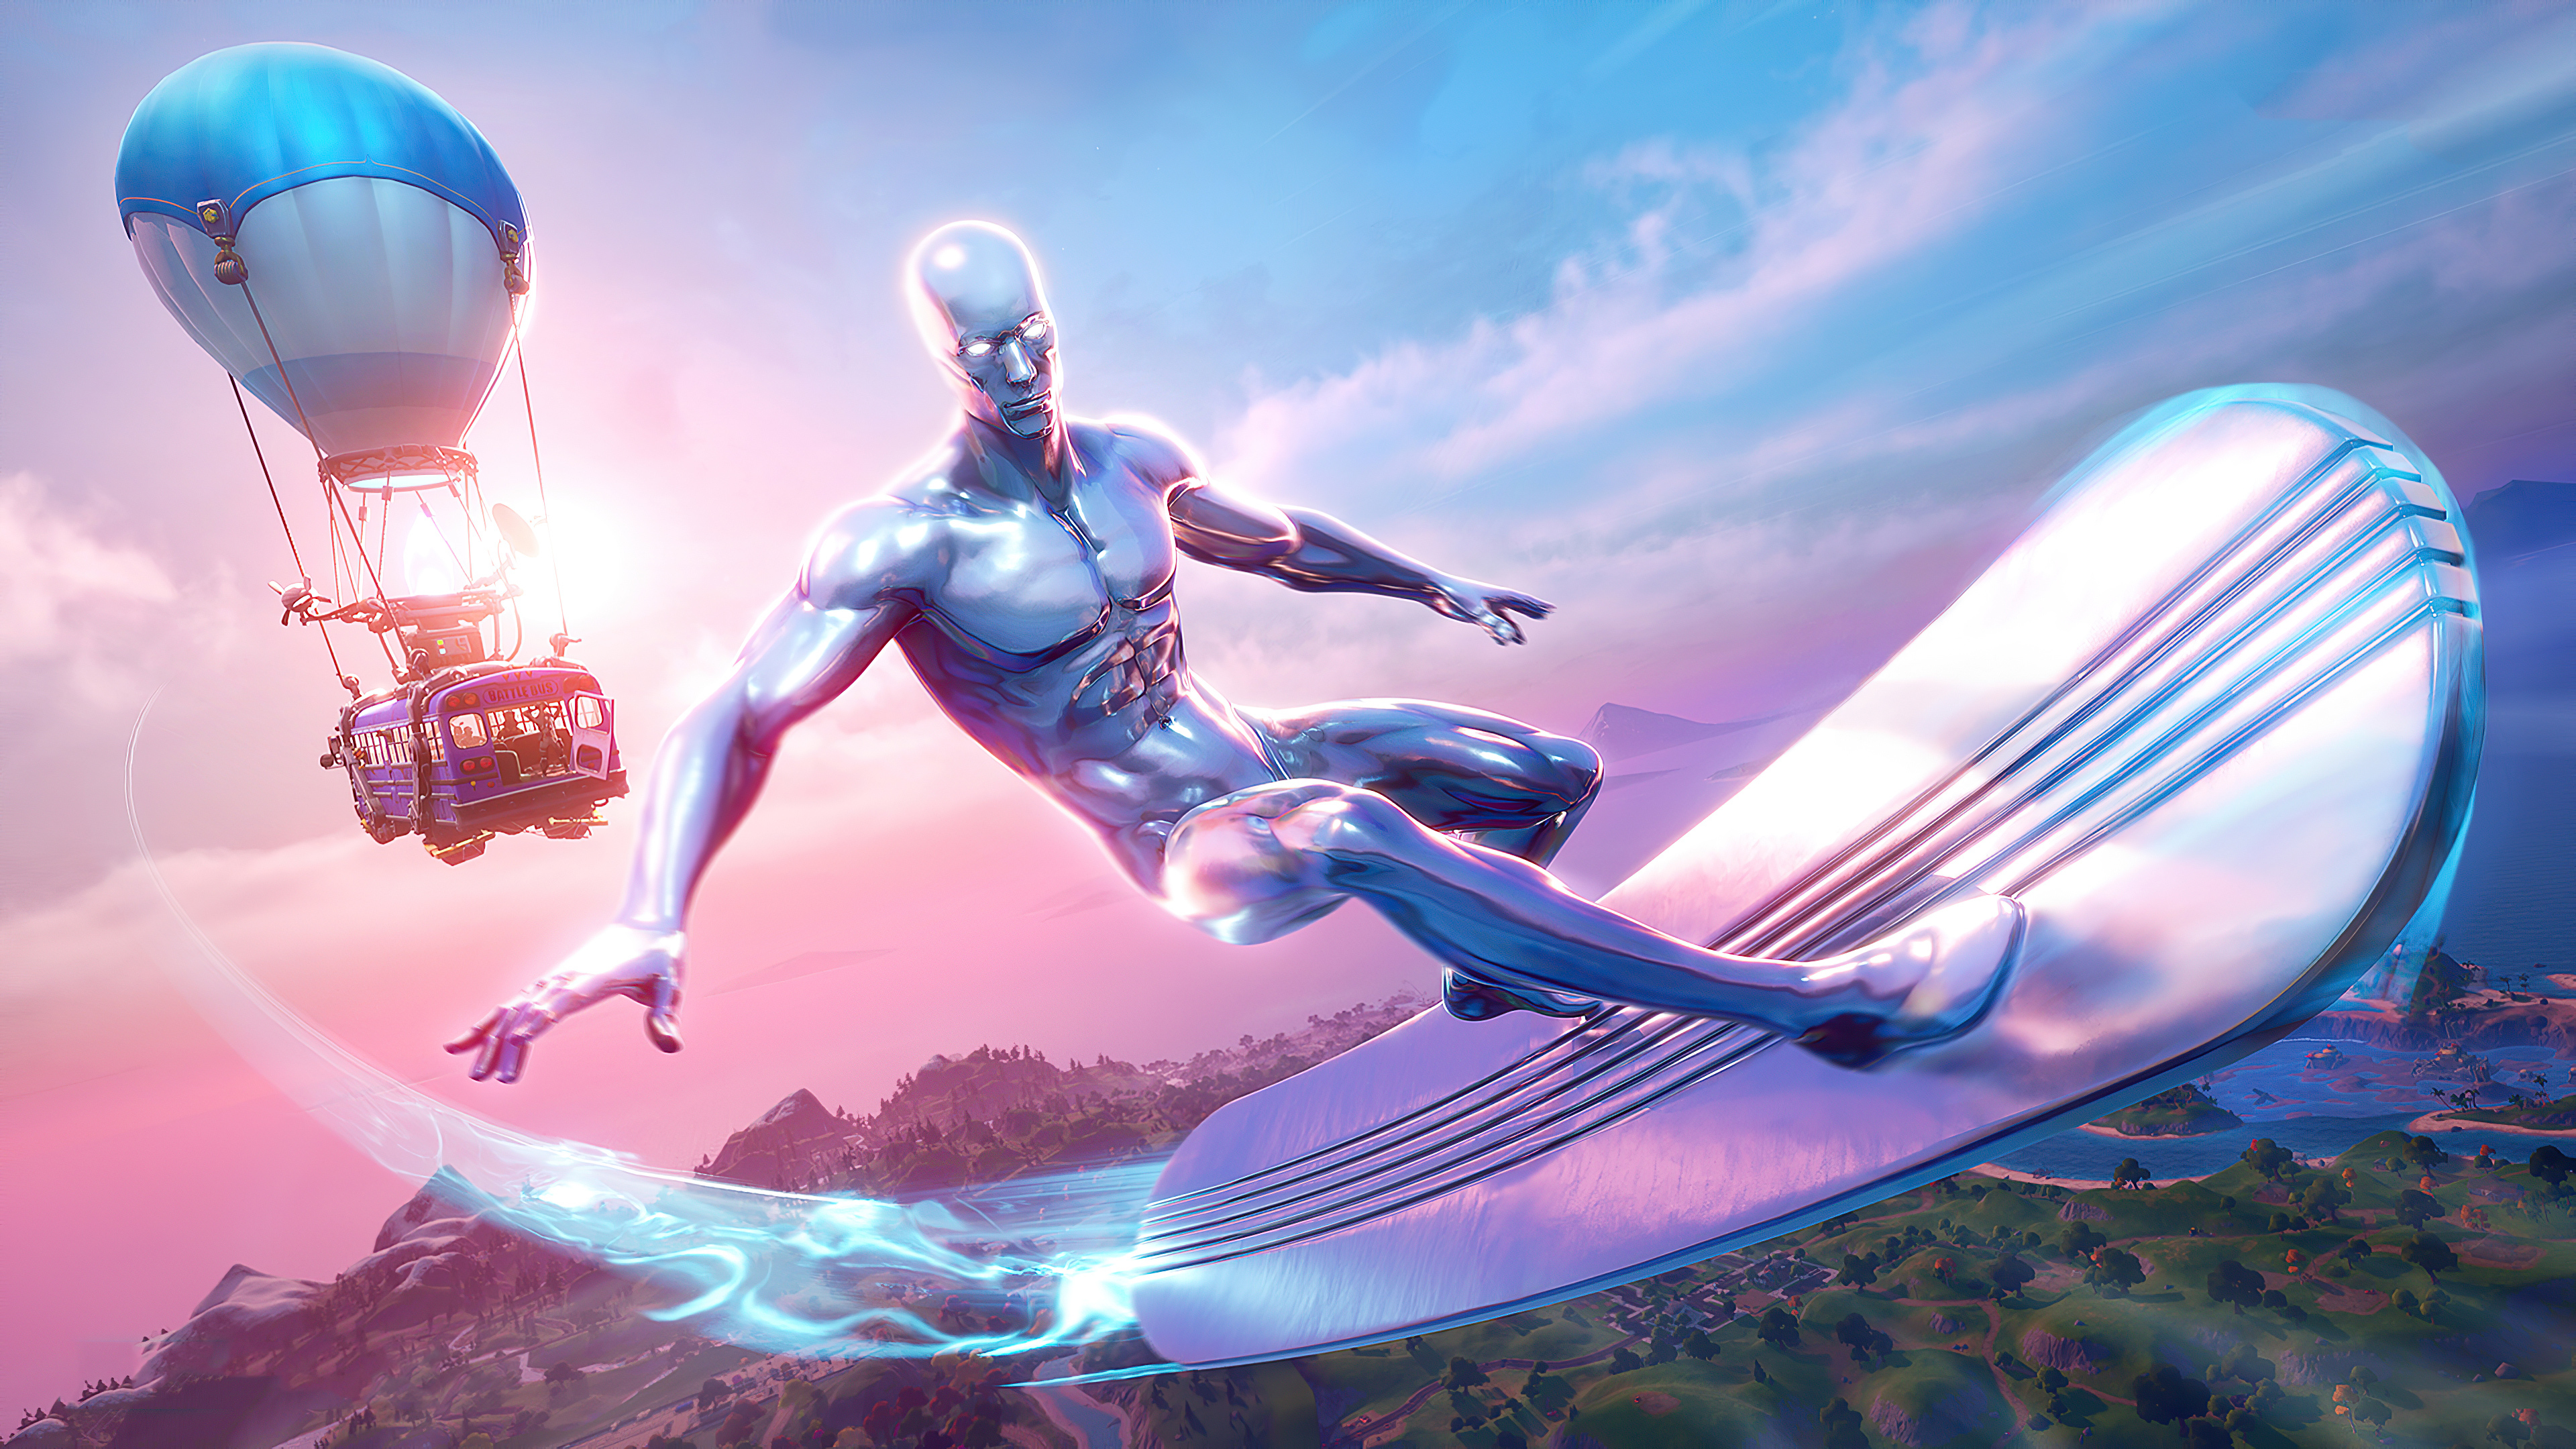 fortnite-season-4-silver-surfer-yj.jpg